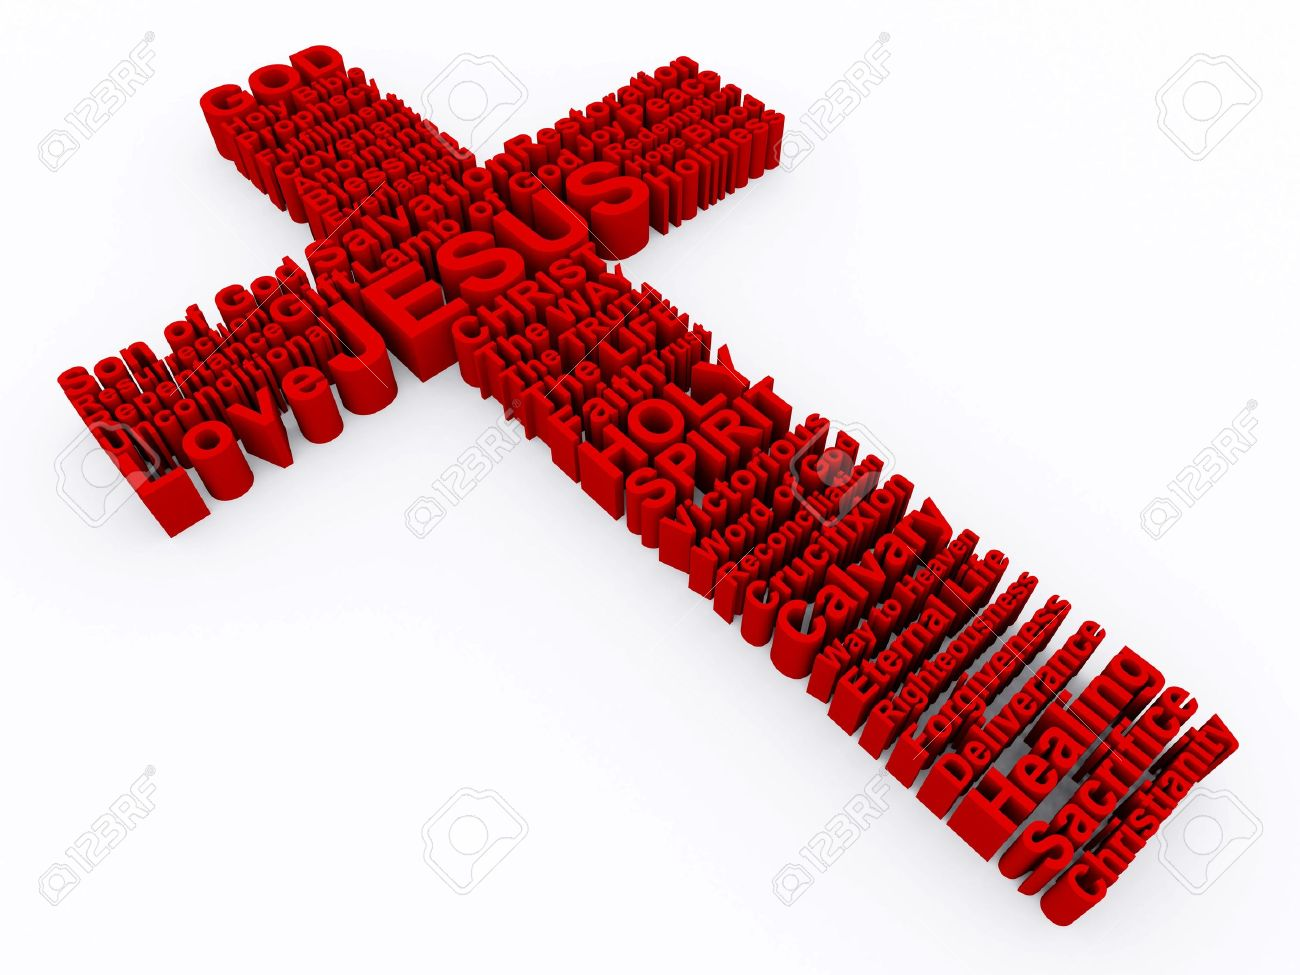 3D Cross made up of various words that describe Christianity and the Cross of Jesus Christ. - 7150682